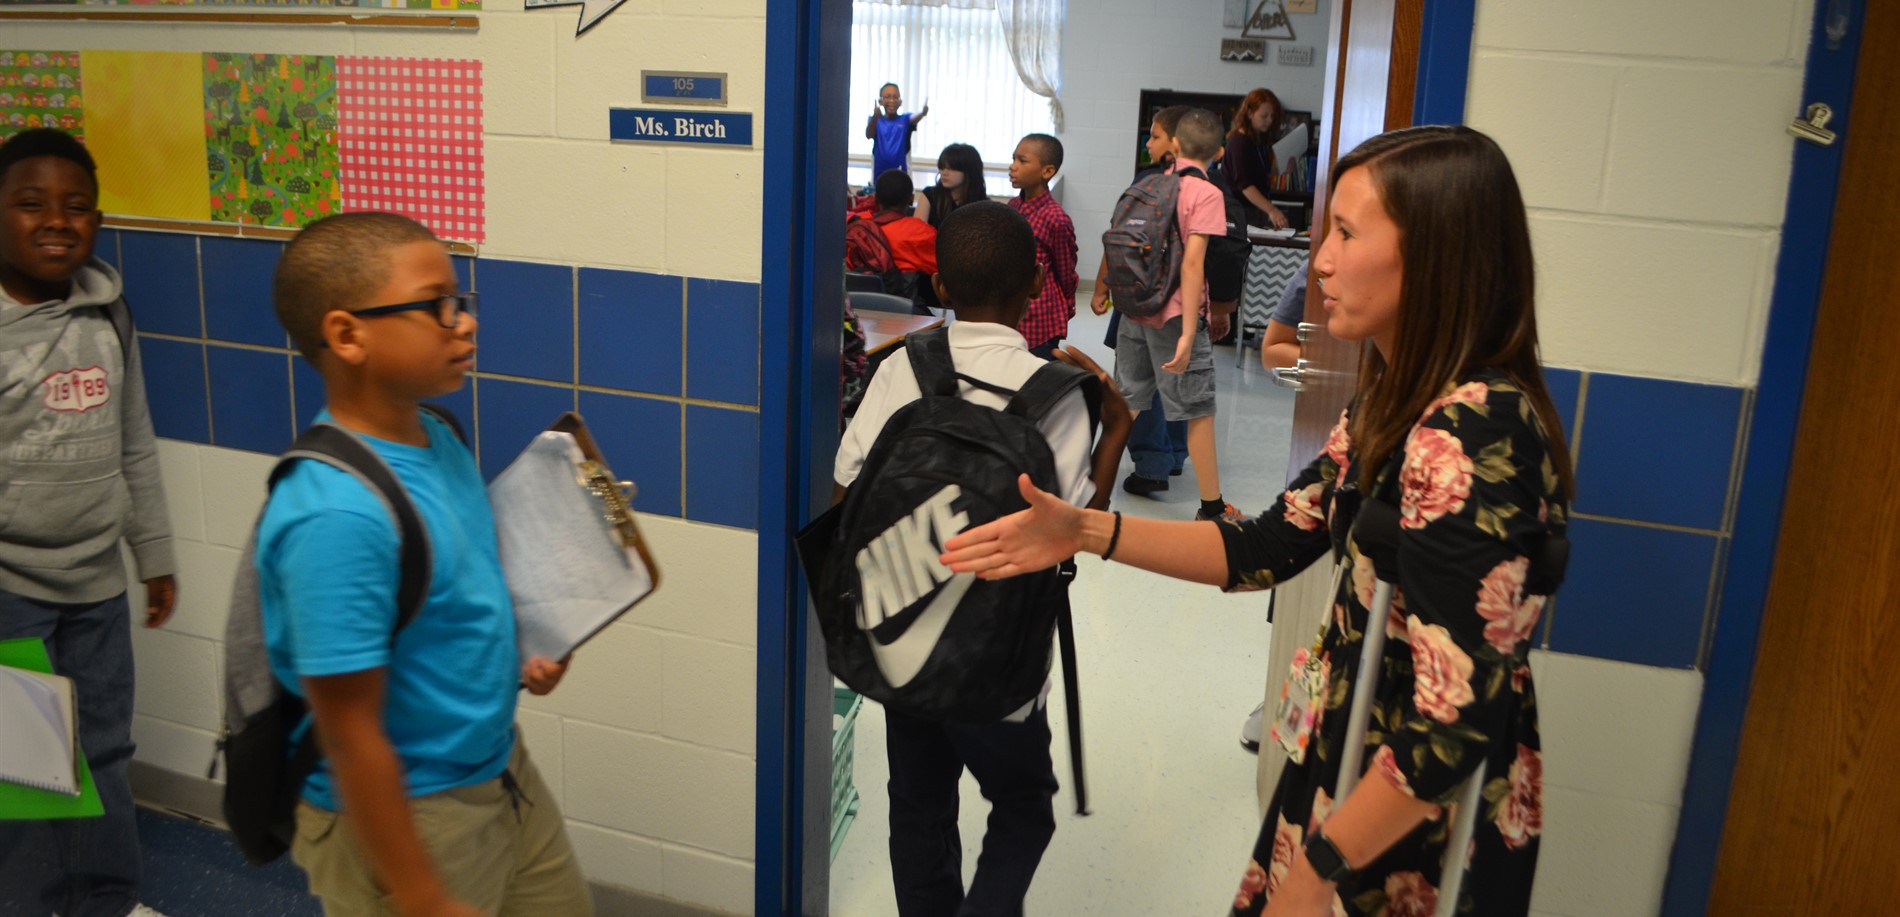 Ms. Birch welcome students to her class with a handshake at Woodland Elementary School